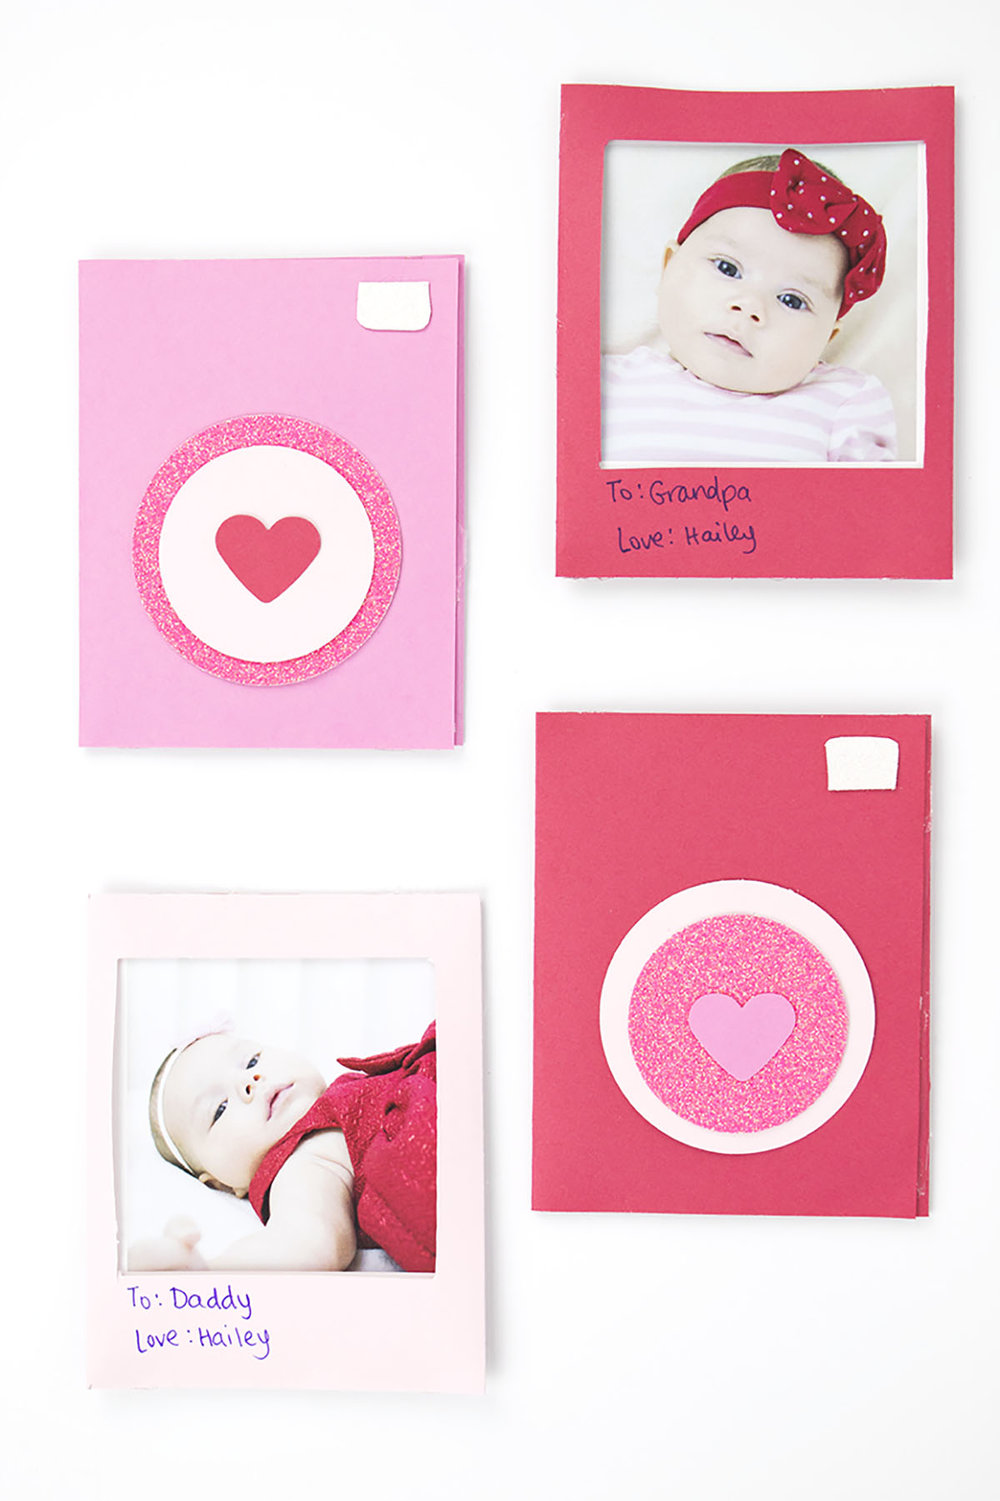 These DIY polaroid valentines are perfect gifts for everyone in the family! It's an easy DIY project to pop into your valentine box and make everyone jealous! #valentines #photovalentine #diyproject